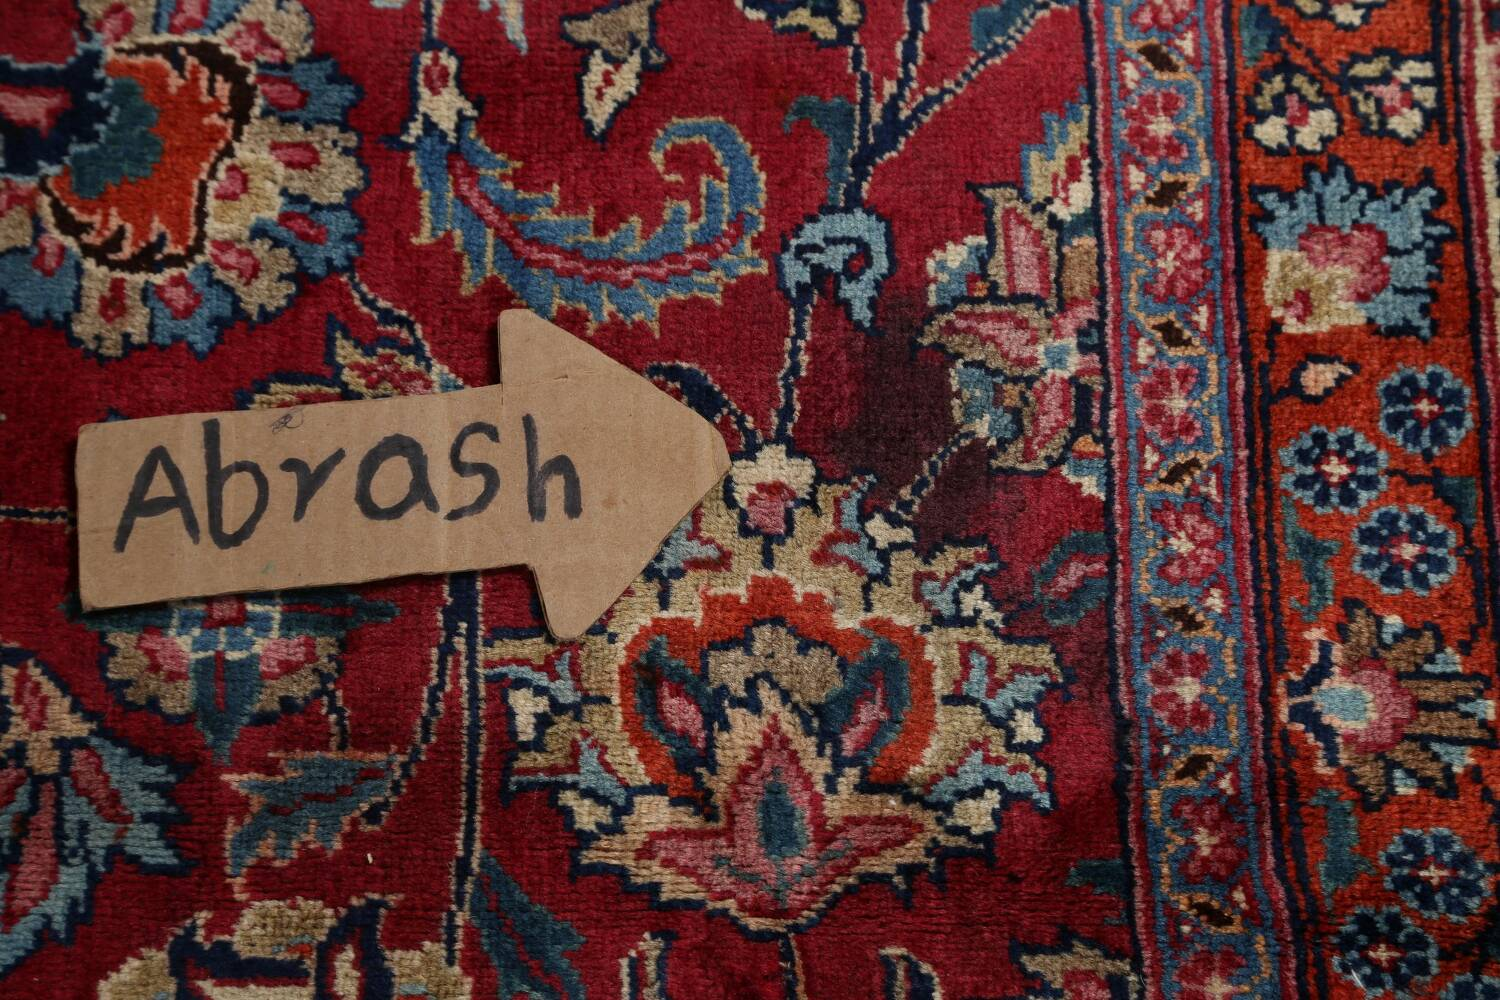 Antique Floral Vegetable Dye Mashad Persian Area Rug 10x13 image 12